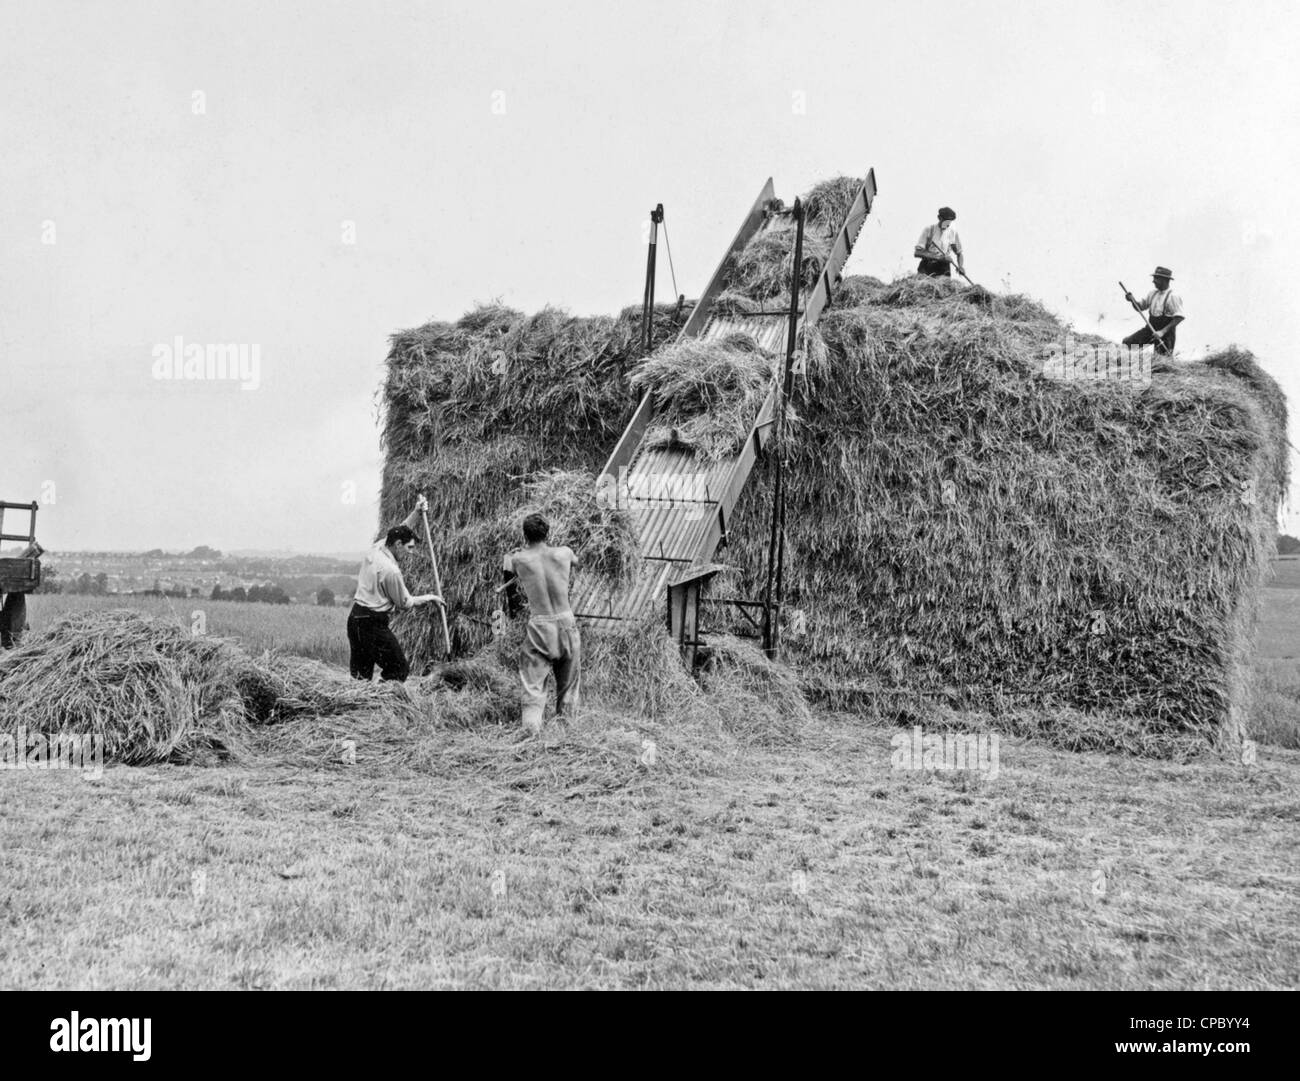 Building a haystack in 1950s hay carried to top of stack by an elevator - vintage farming - Stock Image